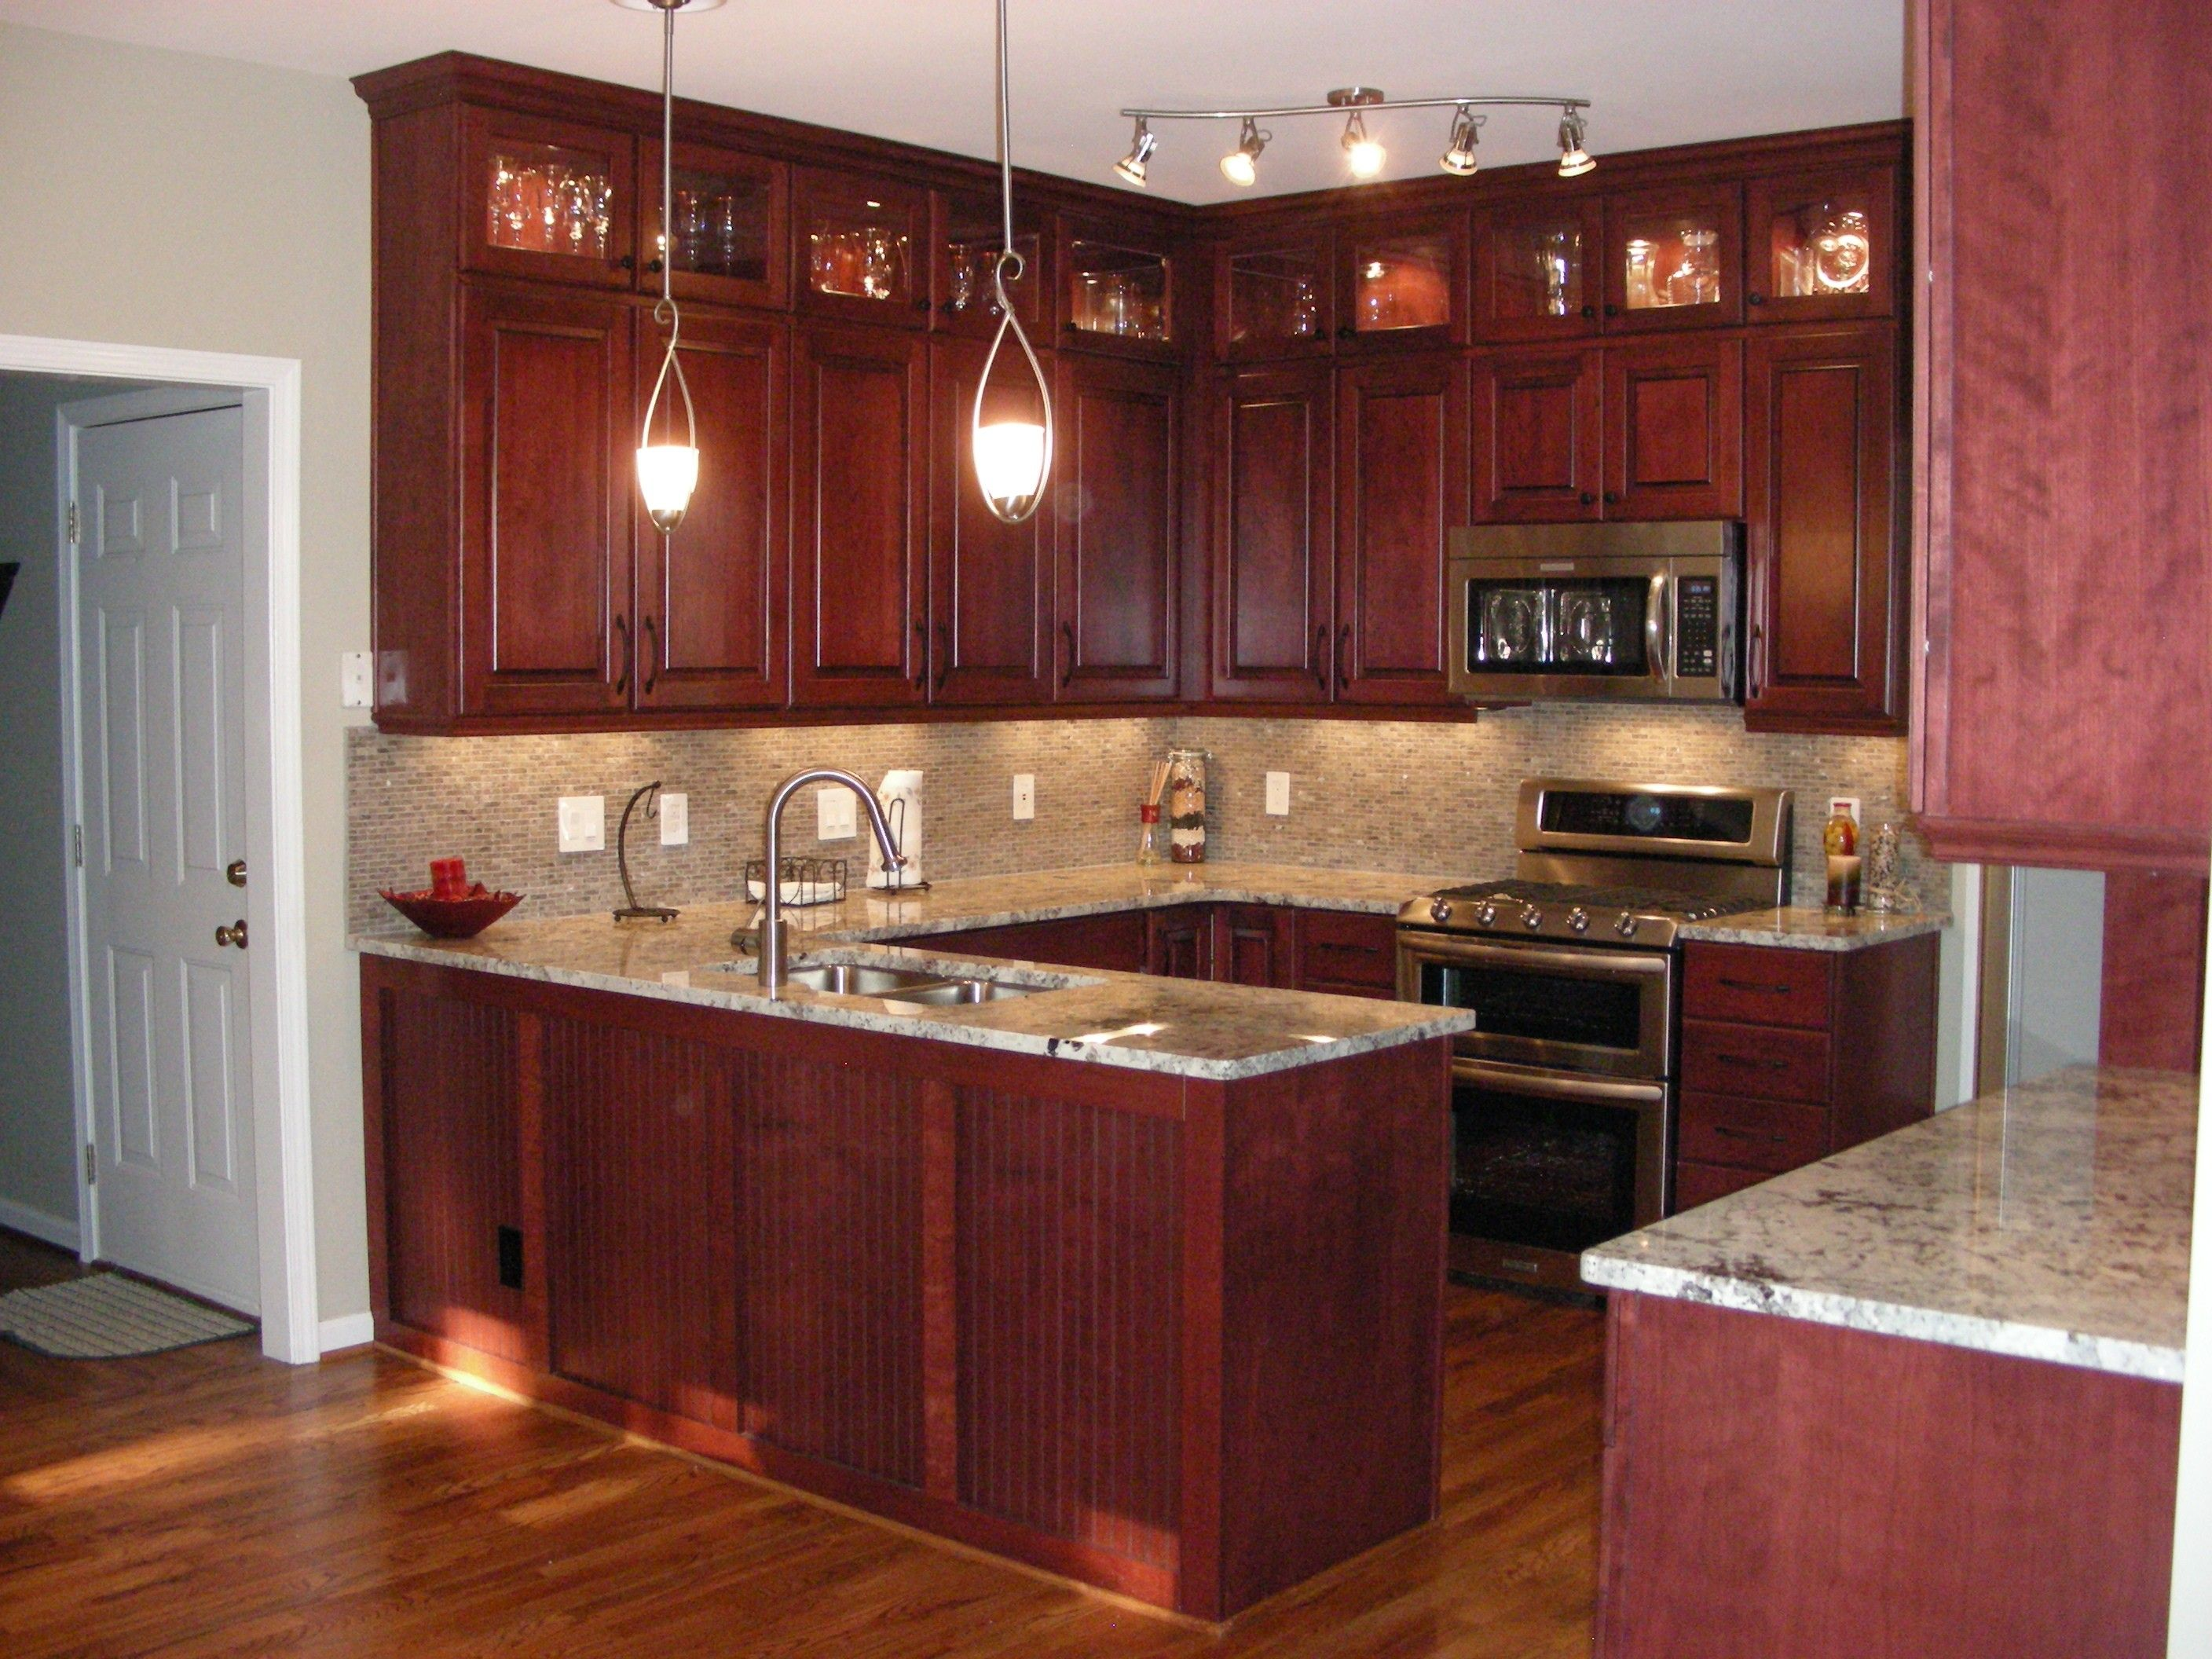 Cherry Kitchen Cabinets Black Granite like this, but bigger tiles in backsplash, and overall a little